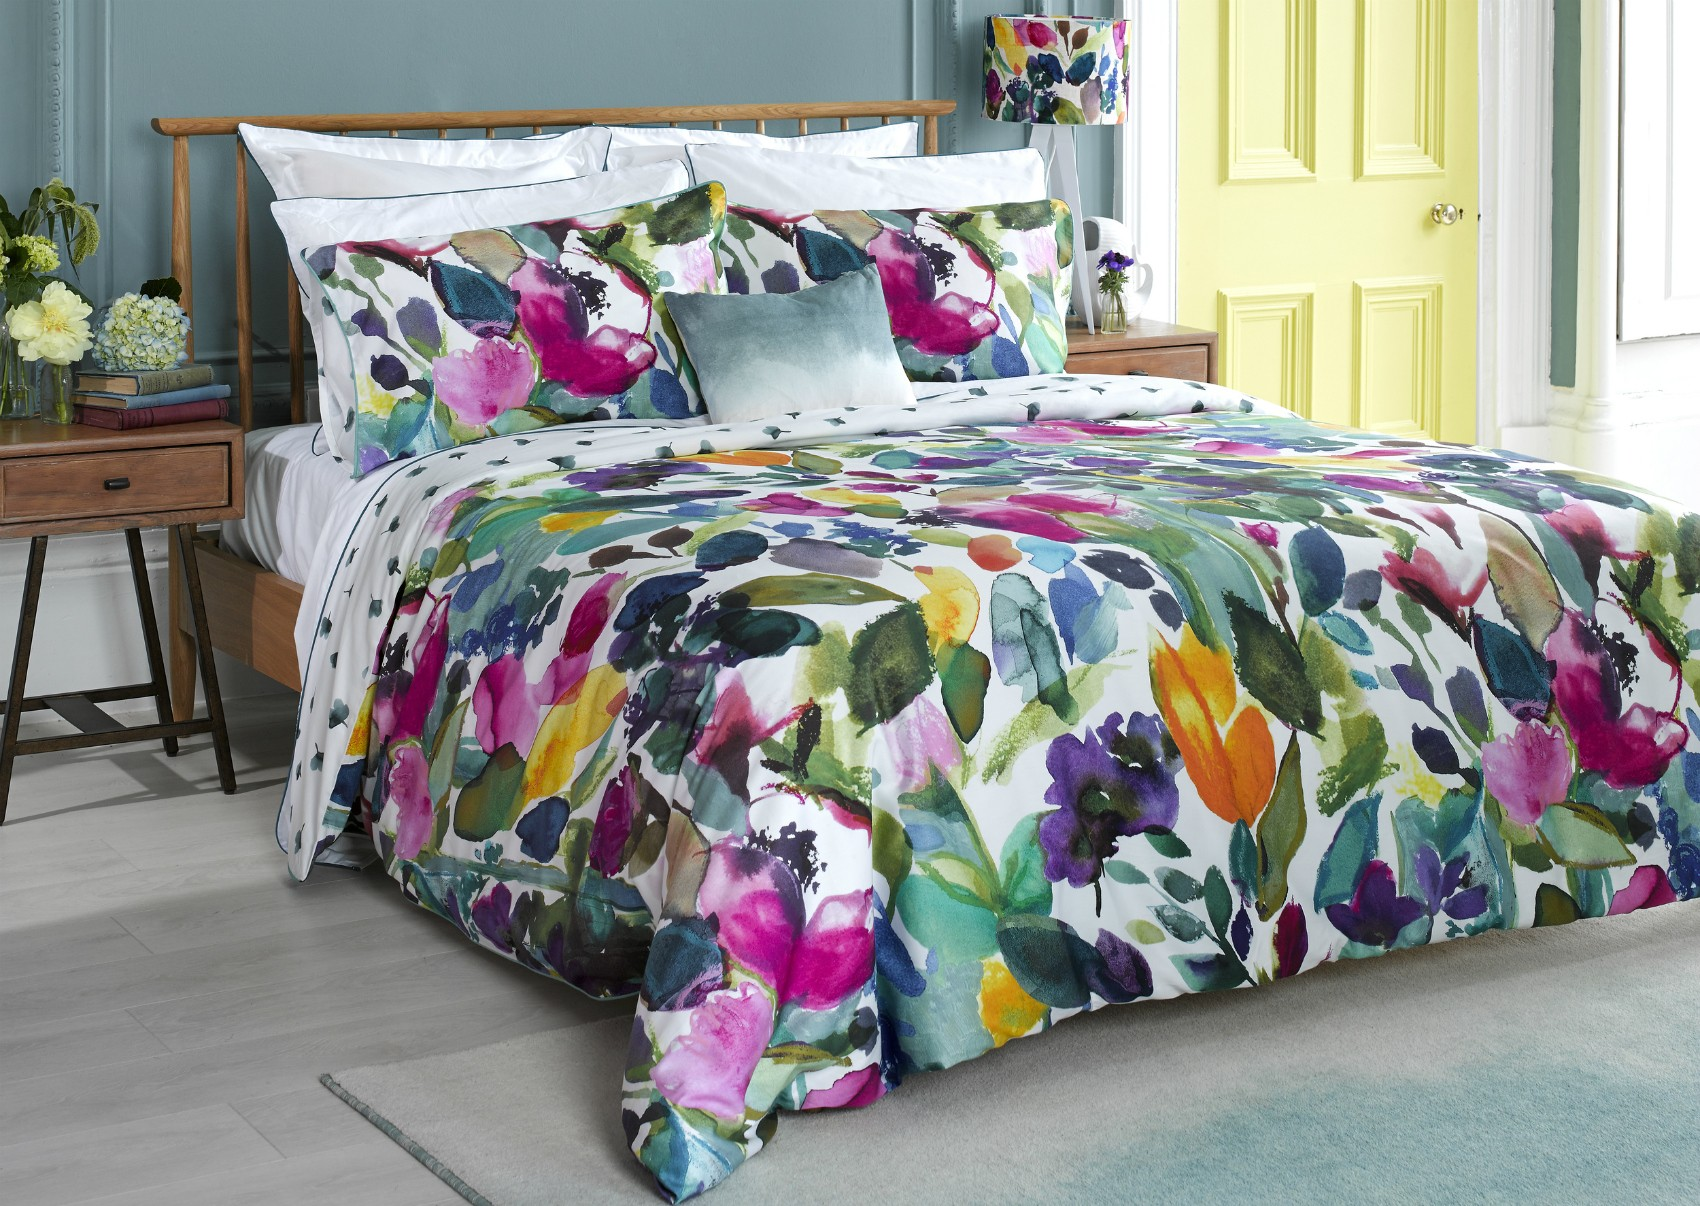 4 mode bedding